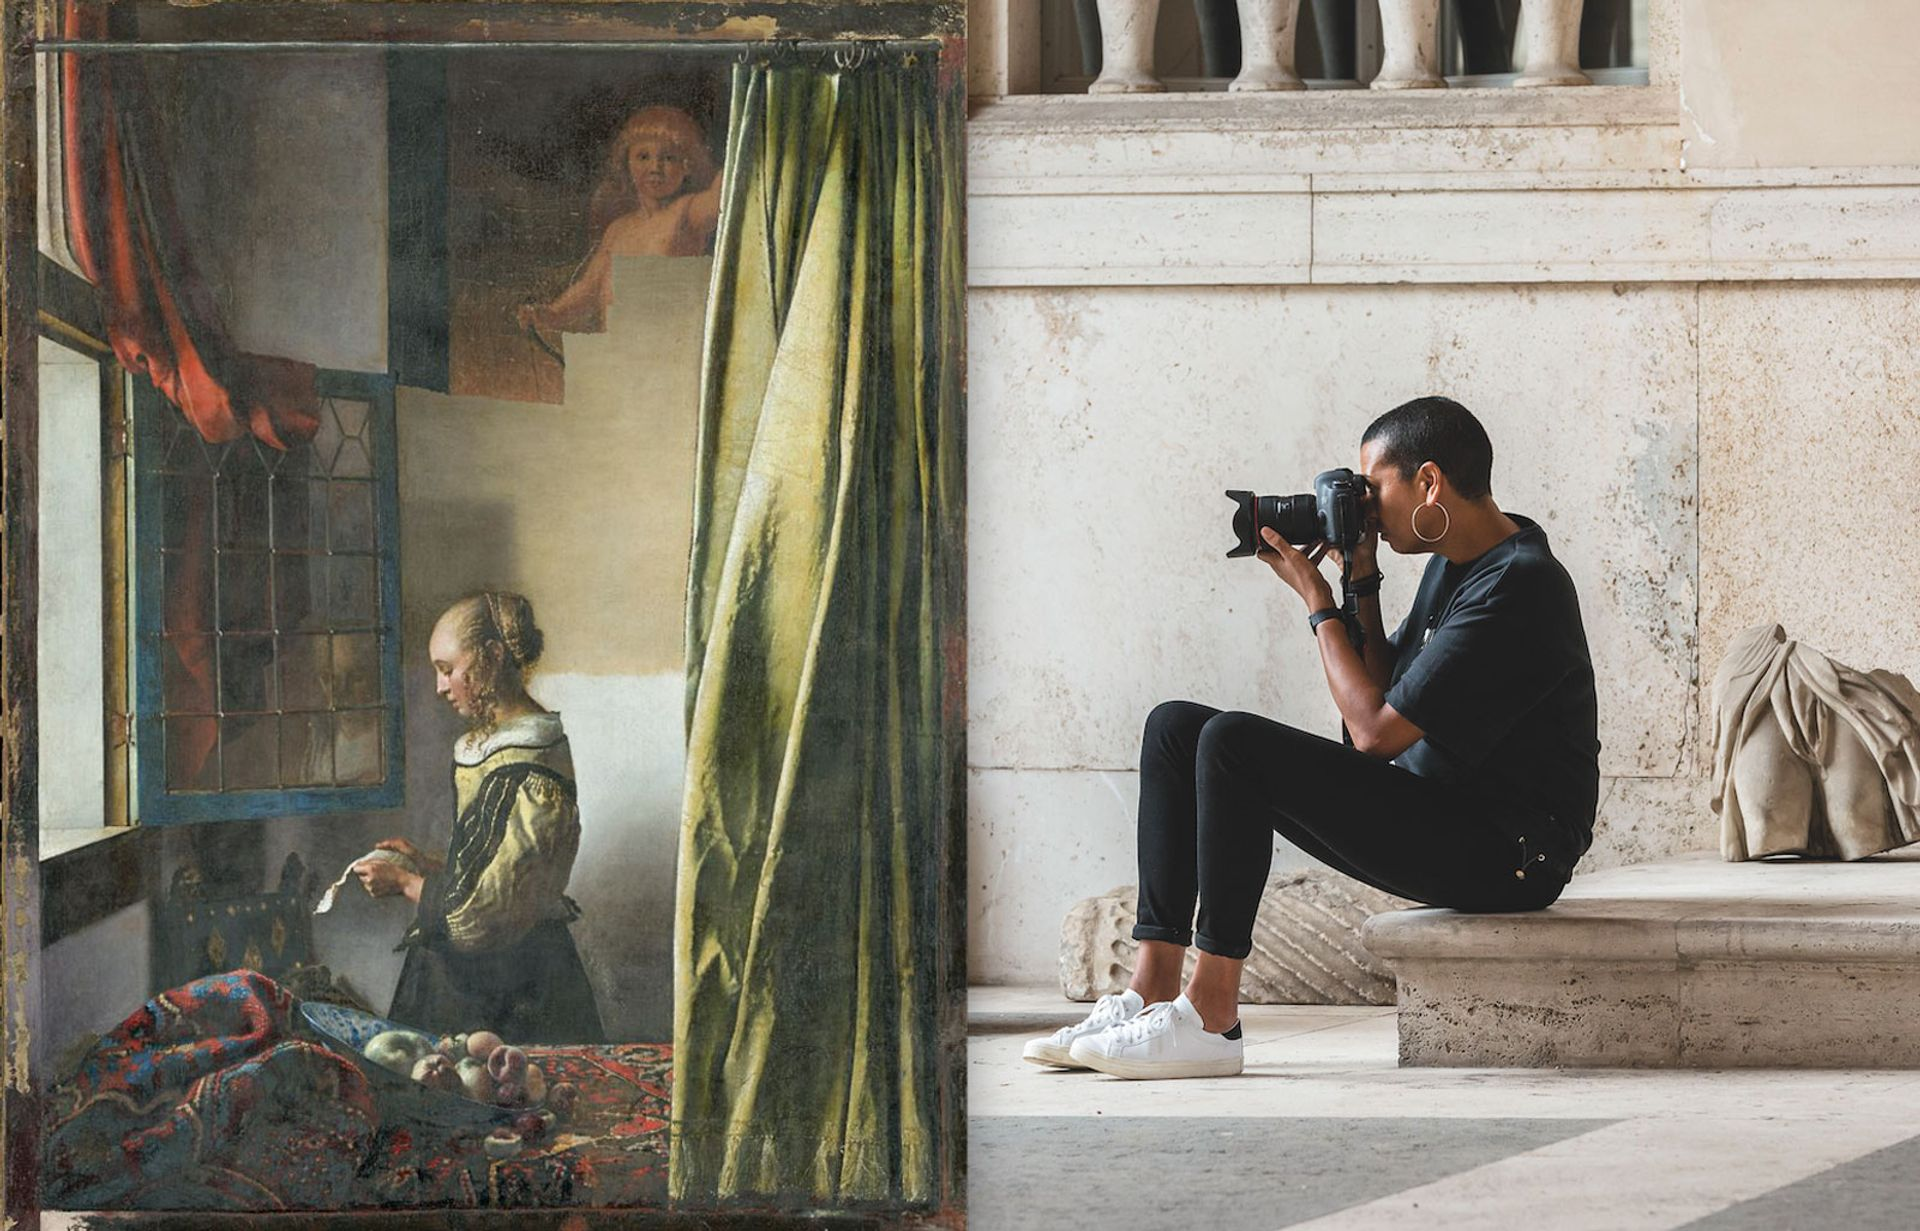 Johannes Vermeer's Girl Reading a Letter at an Open Window  (1657-59) with the partially revealed Cupid. And the Turner Prize-nominated Helen Cammock © Vermeer: Wolfgang Kreische. Cammock: Photo © Sebastiano Luciano